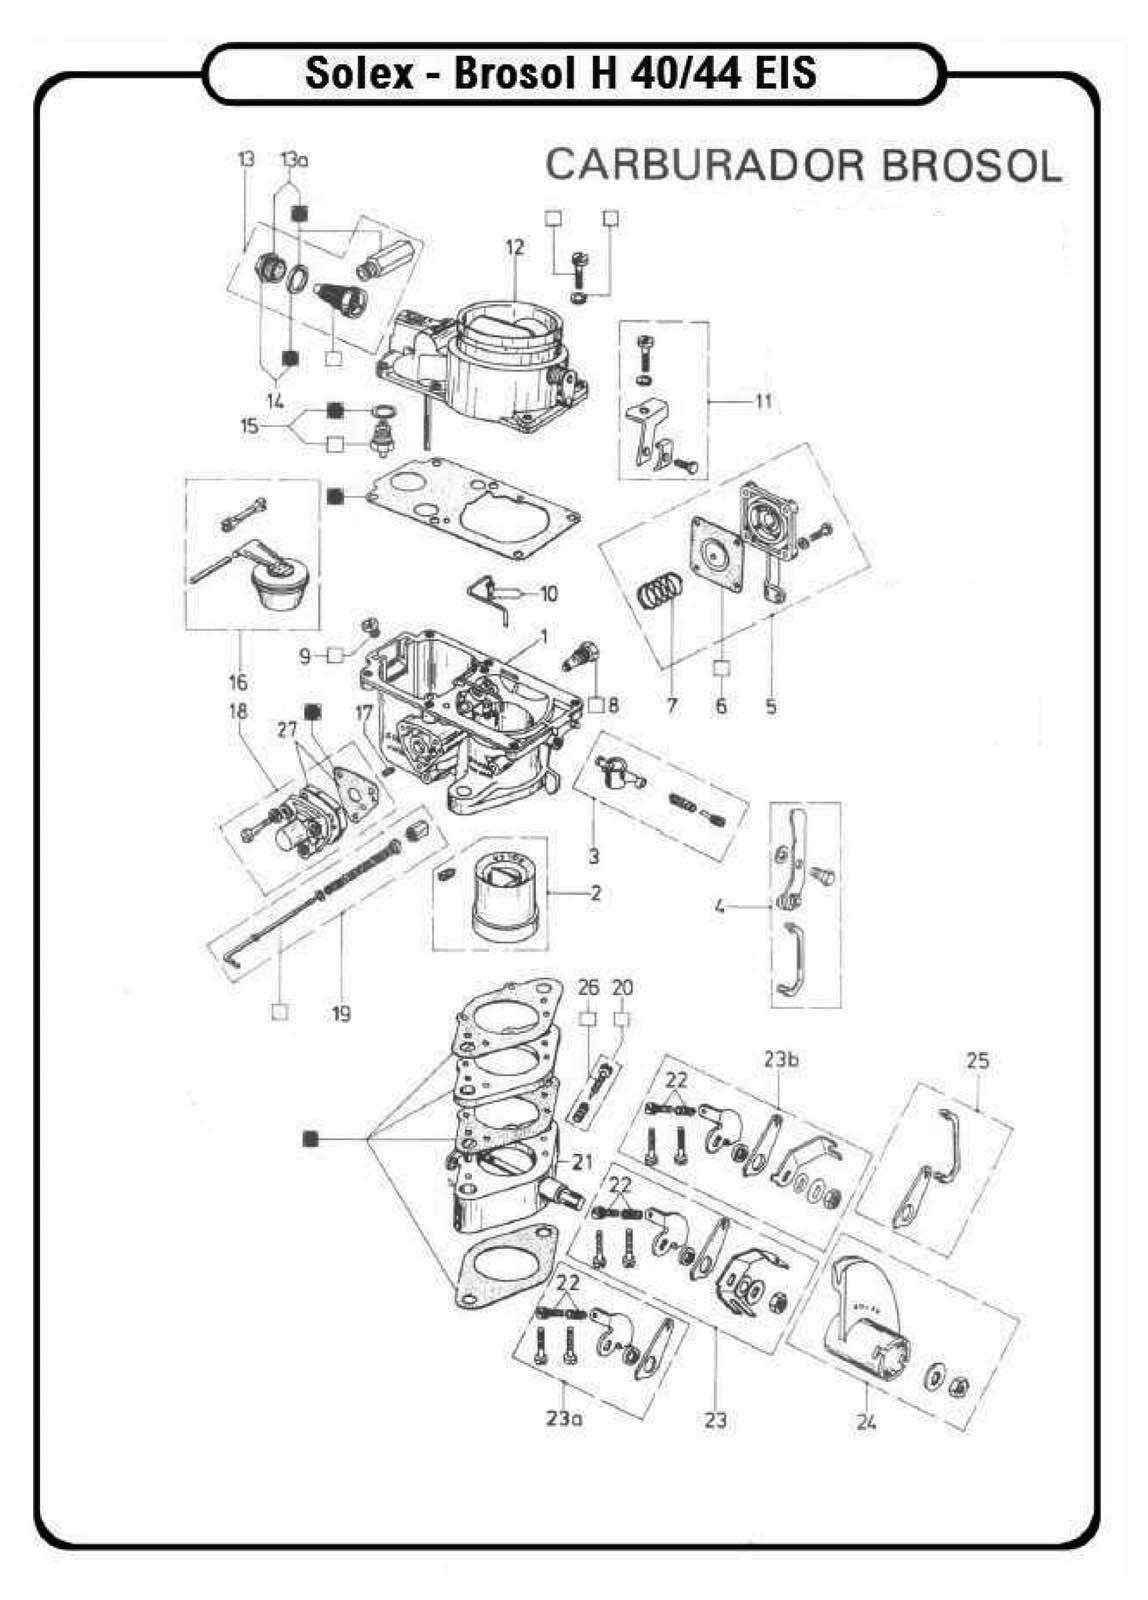 1971 Volkswagen Super Beetle Engine Diagram. Volkswagen